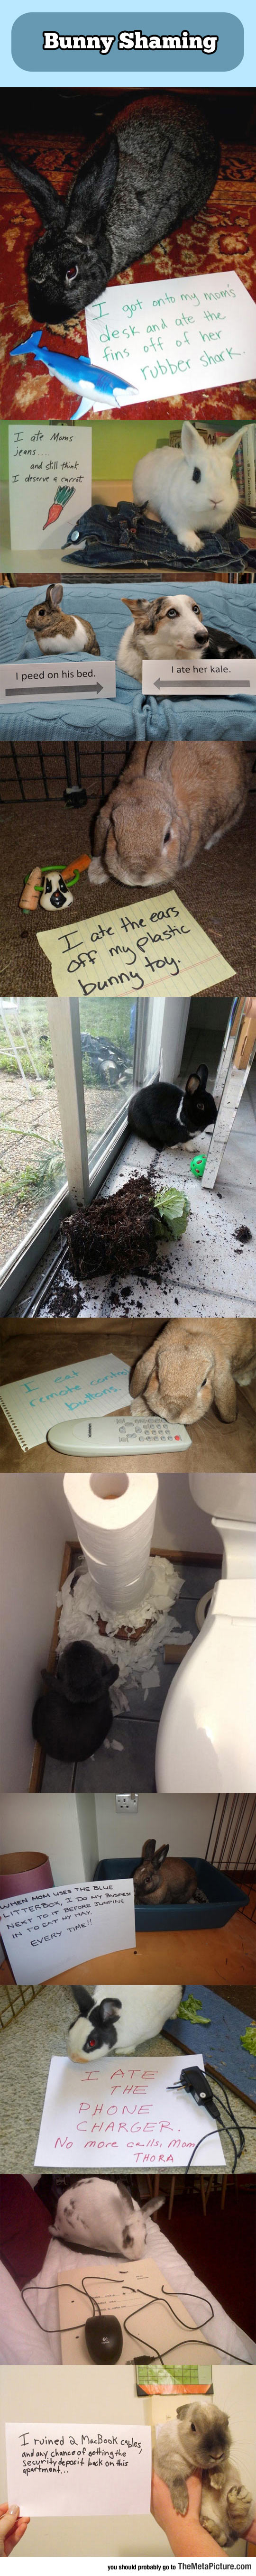 cute-bunny-shame-signs